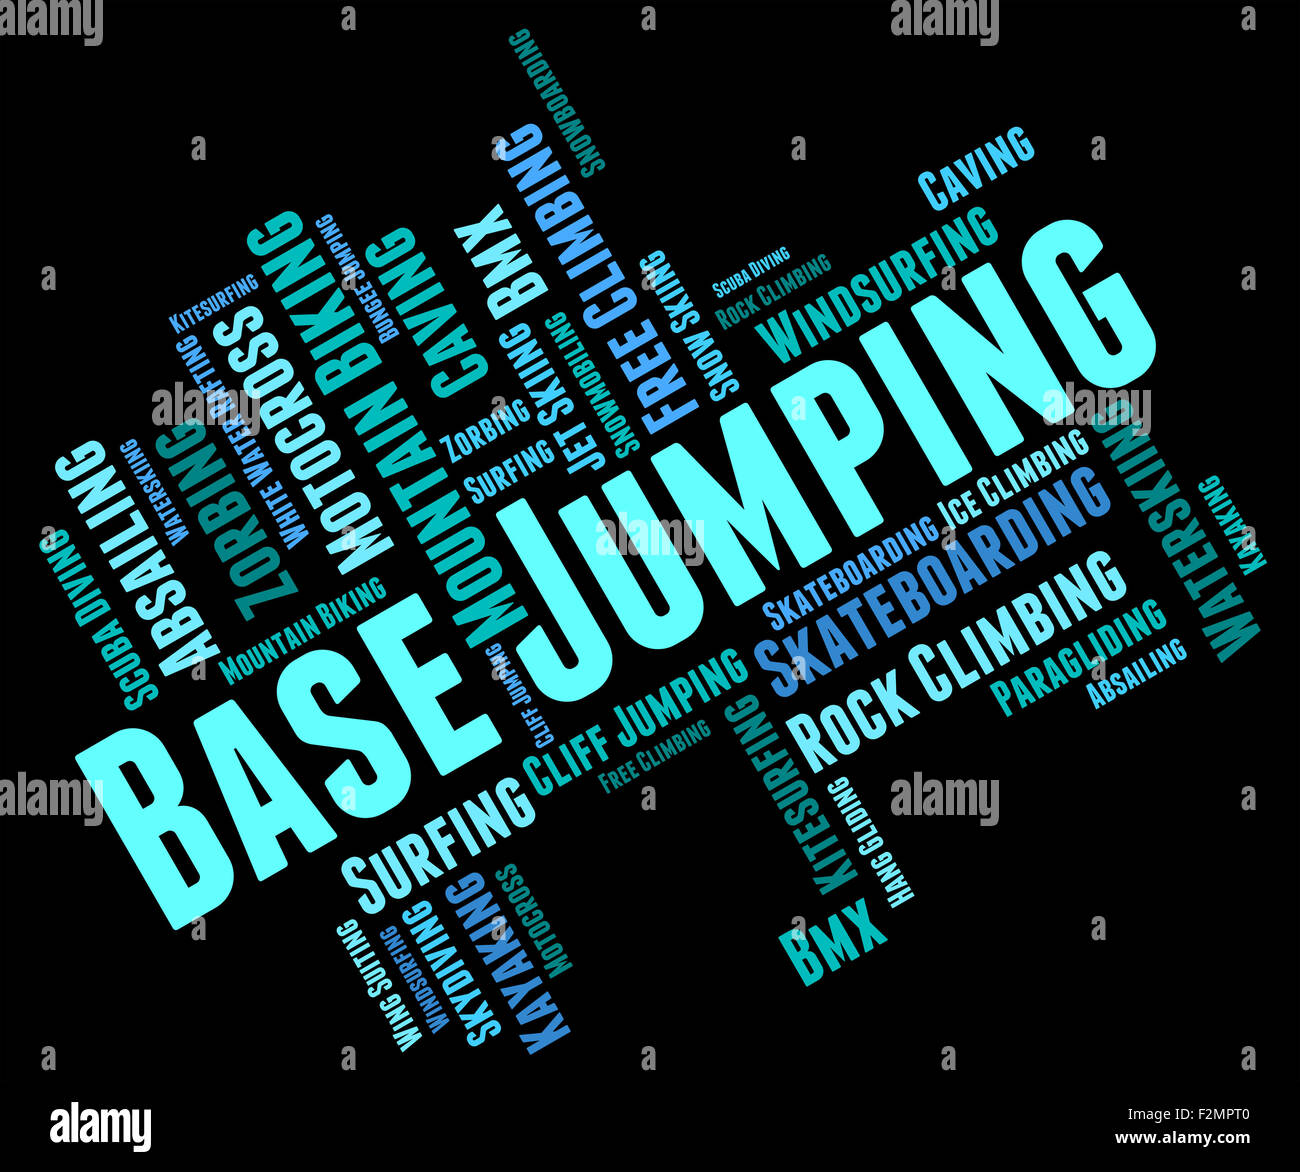 Base Jumping Representing Parachuting Skydiving And Basejumper - Stock Image